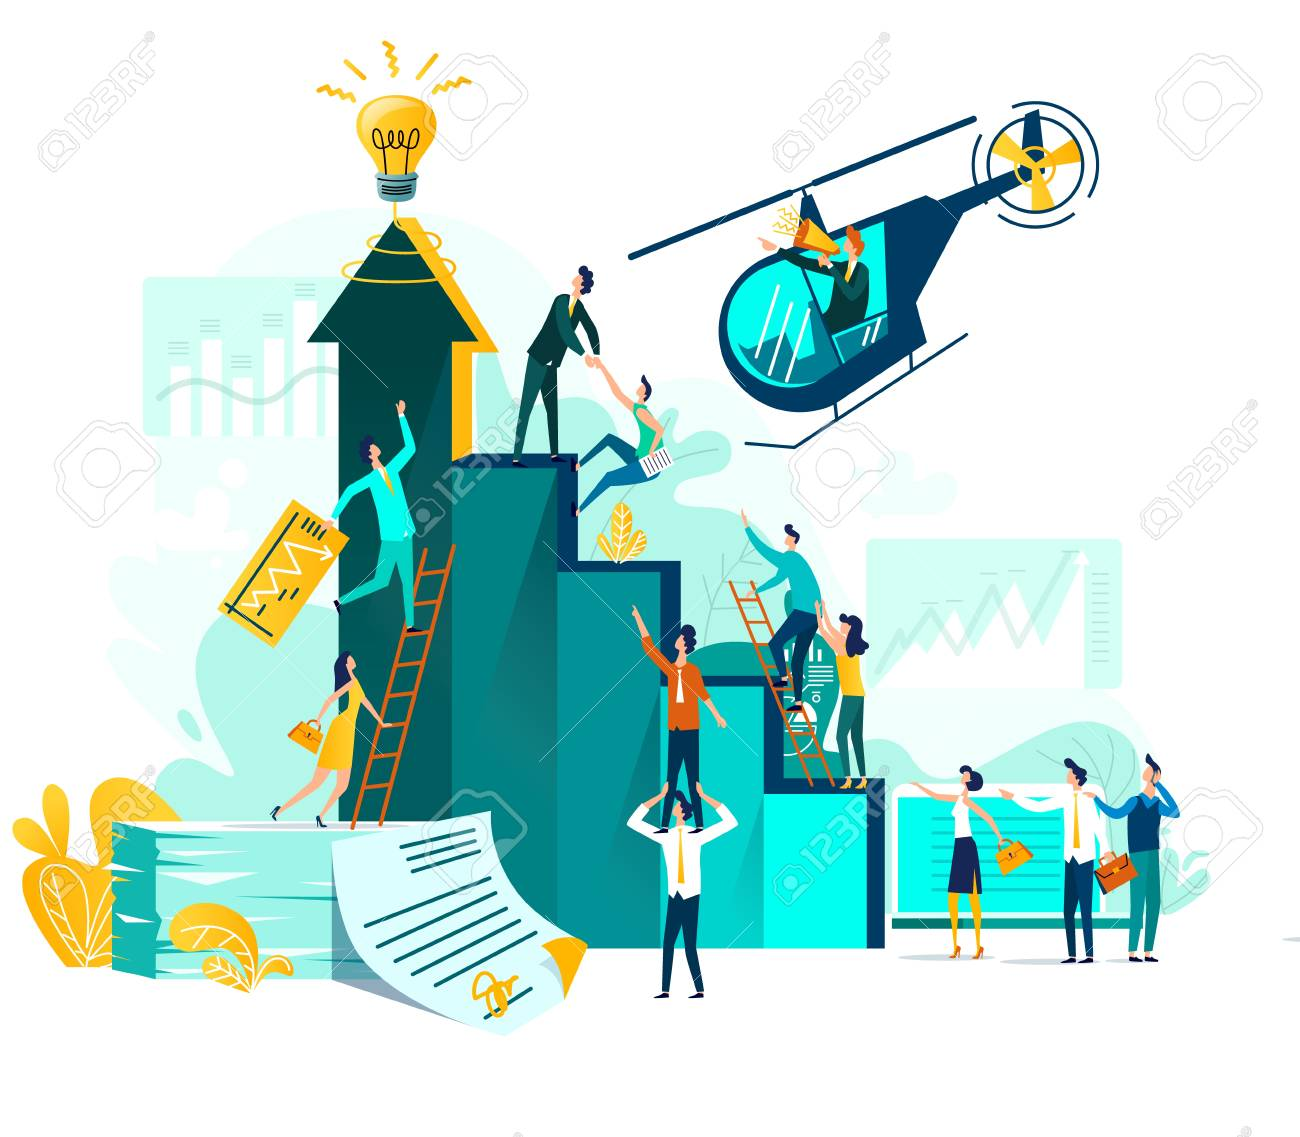 Goal achievement and teamwork businessvector concept, career growth and cooperation for development of project, idea, leader with loudspeaker in flying helicopter. Ladder of success, climbing people - 144341221